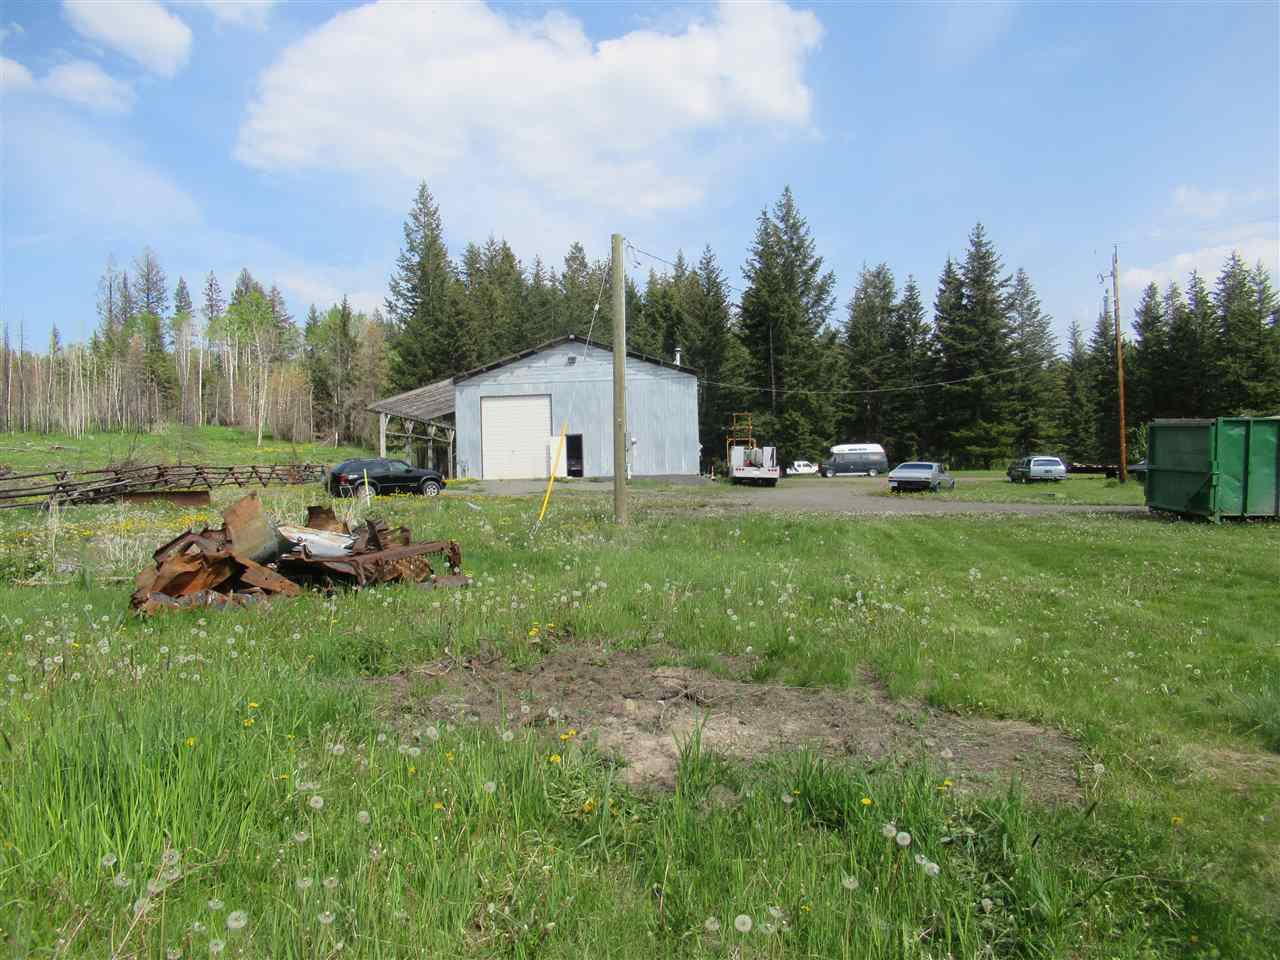 Photo 19: Photos: 1224 DESAUTEL Road in Williams Lake: Williams Lake - Rural East Manufactured Home for sale (Williams Lake (Zone 27))  : MLS®# R2376873